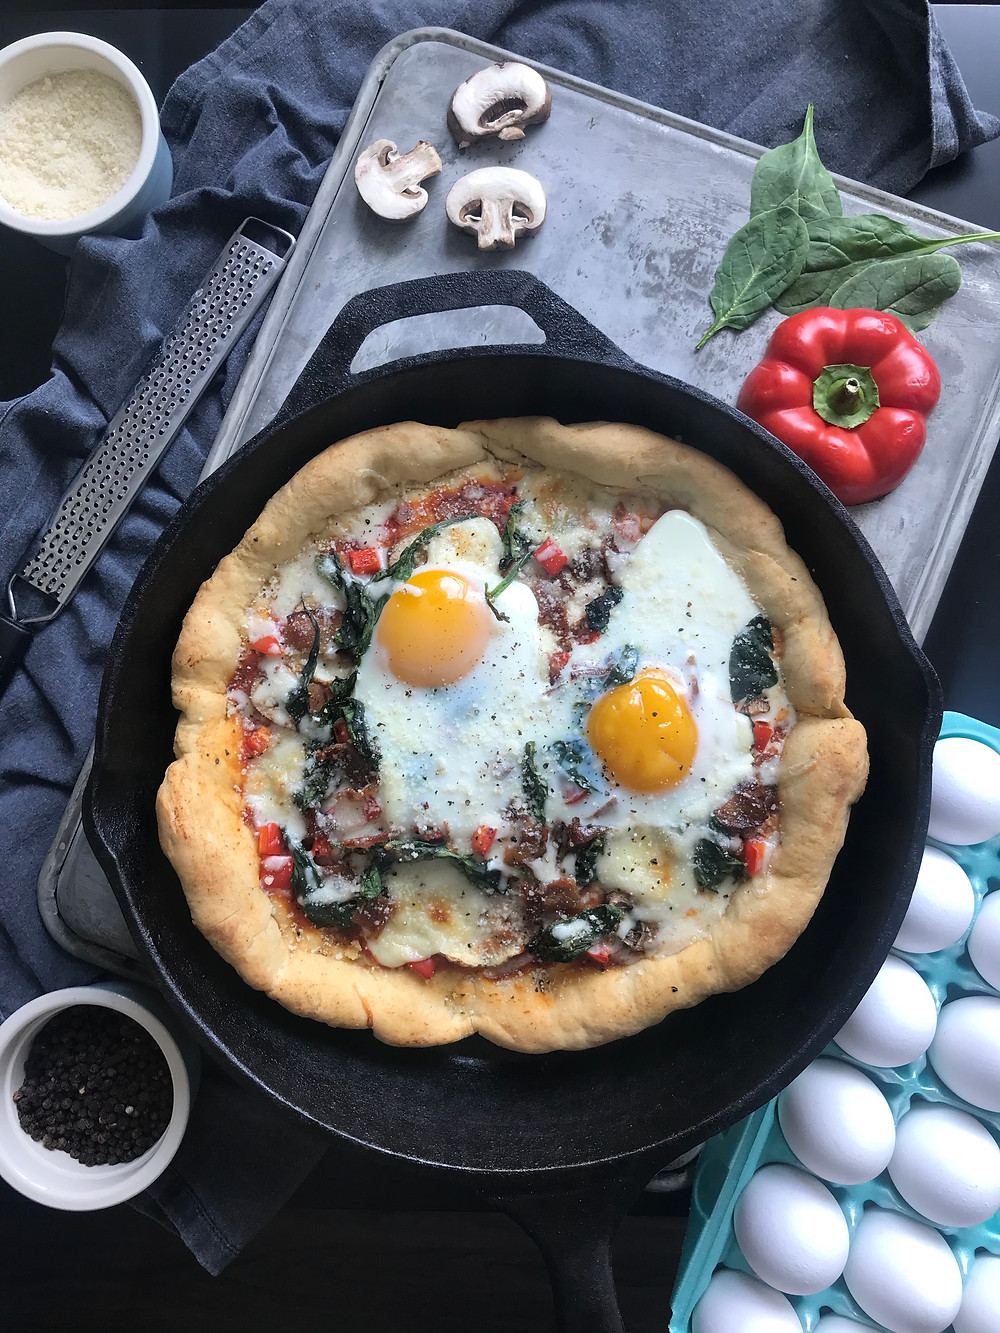 picture of a breakfast pizza with homemade dough